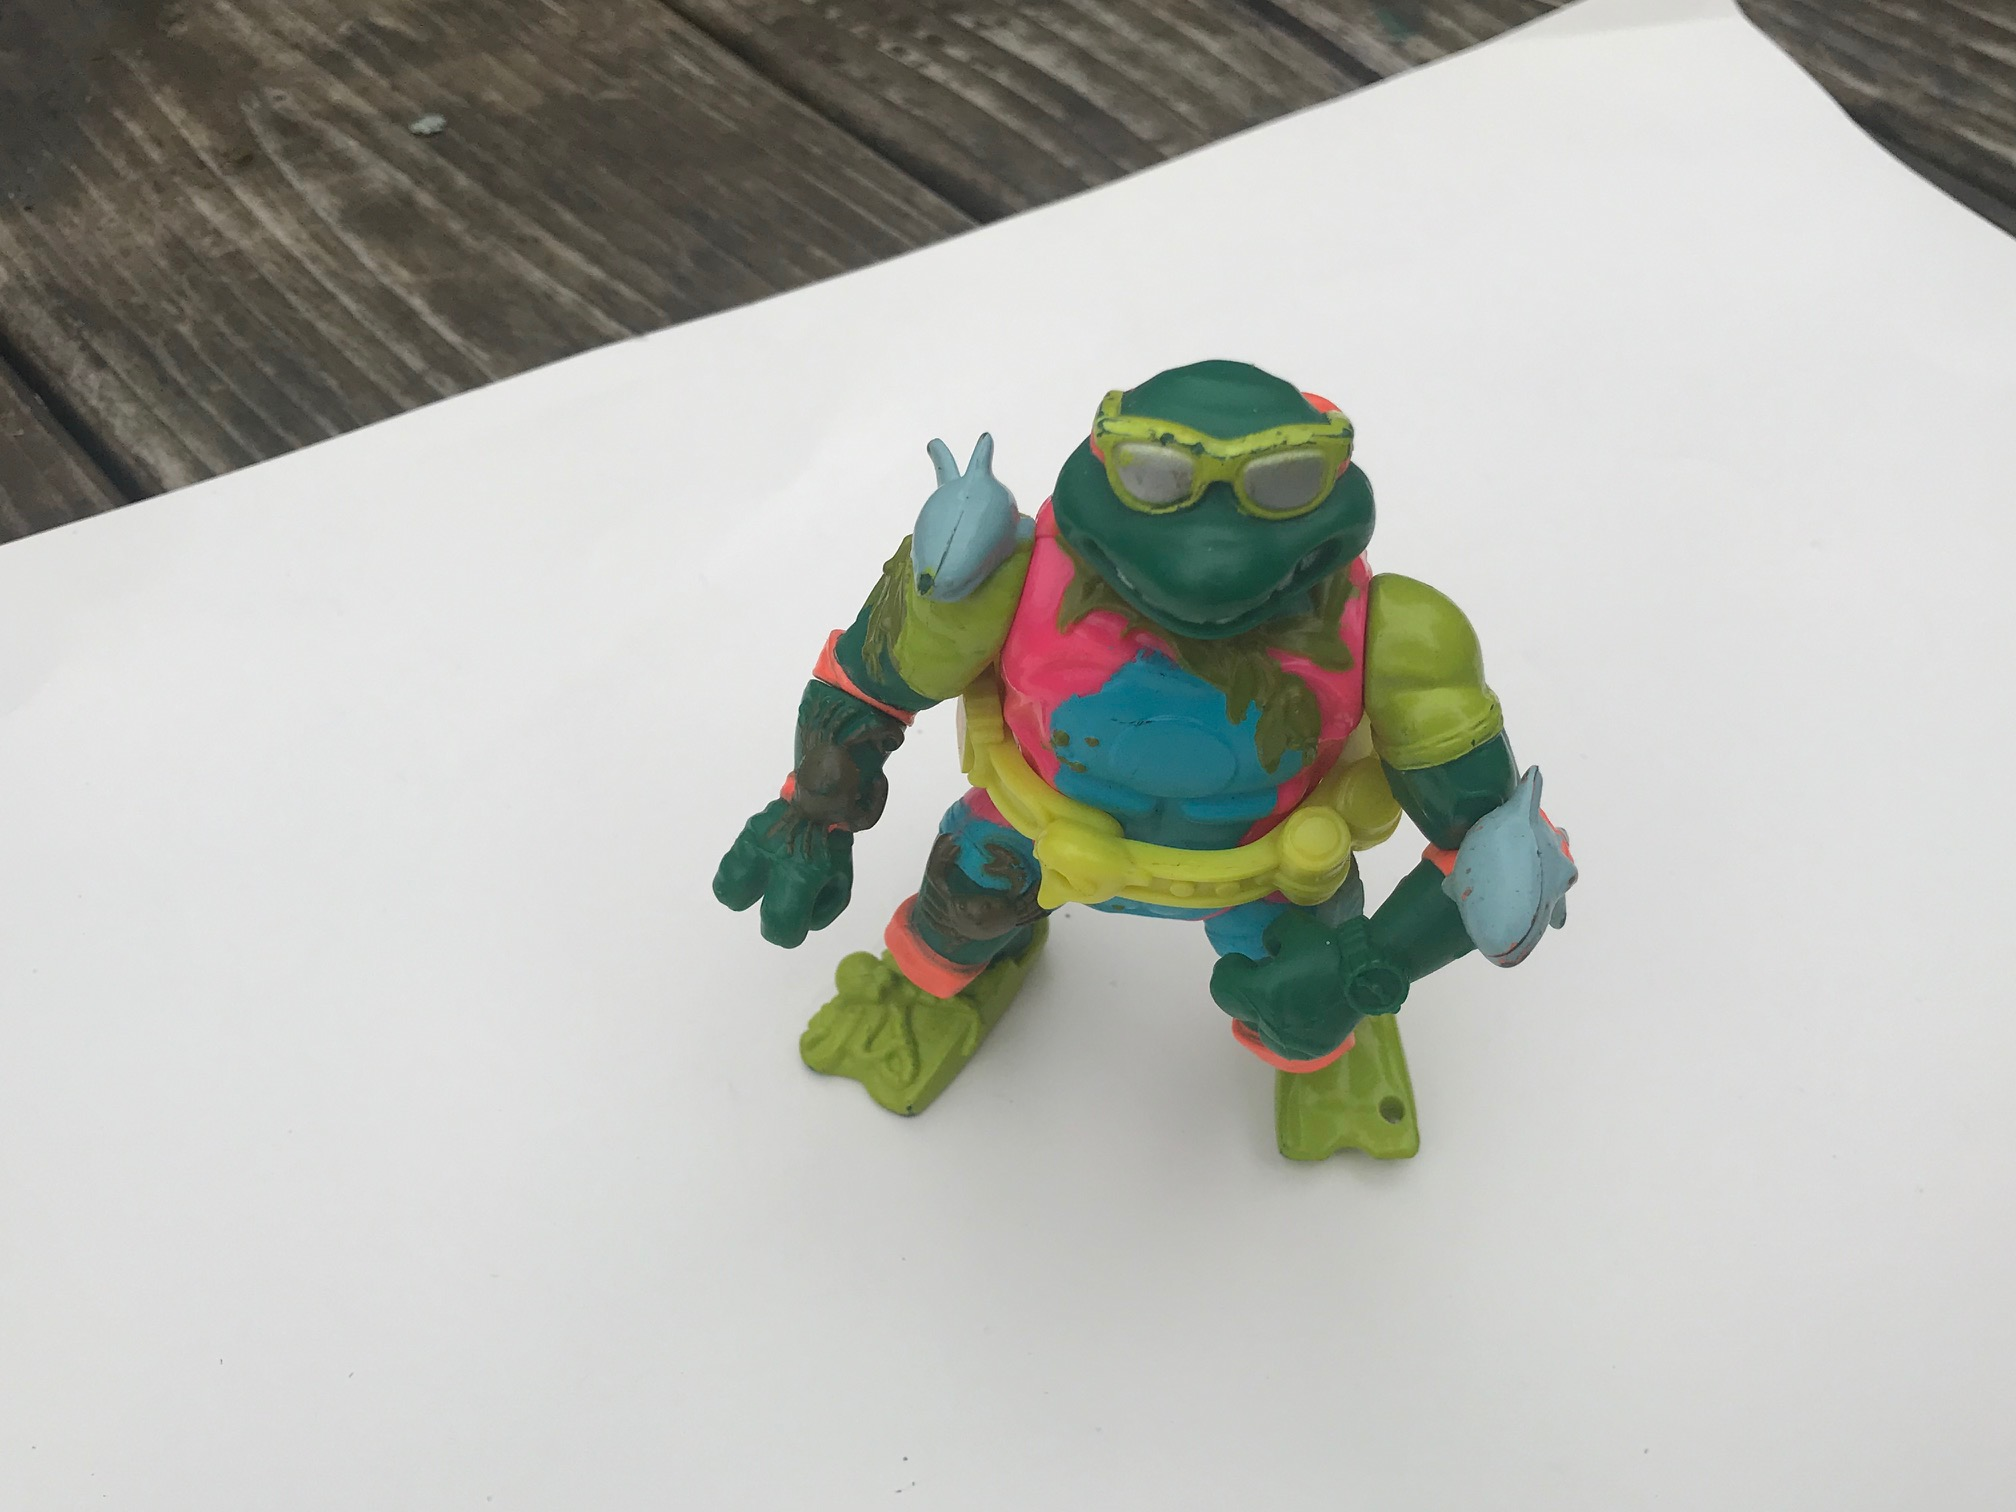 1990 Mirage Studios Playmates Toys Teenage Mutant Ninja Turtle Figurine: Lead Free, Cadmium Free, Arsenic Free!